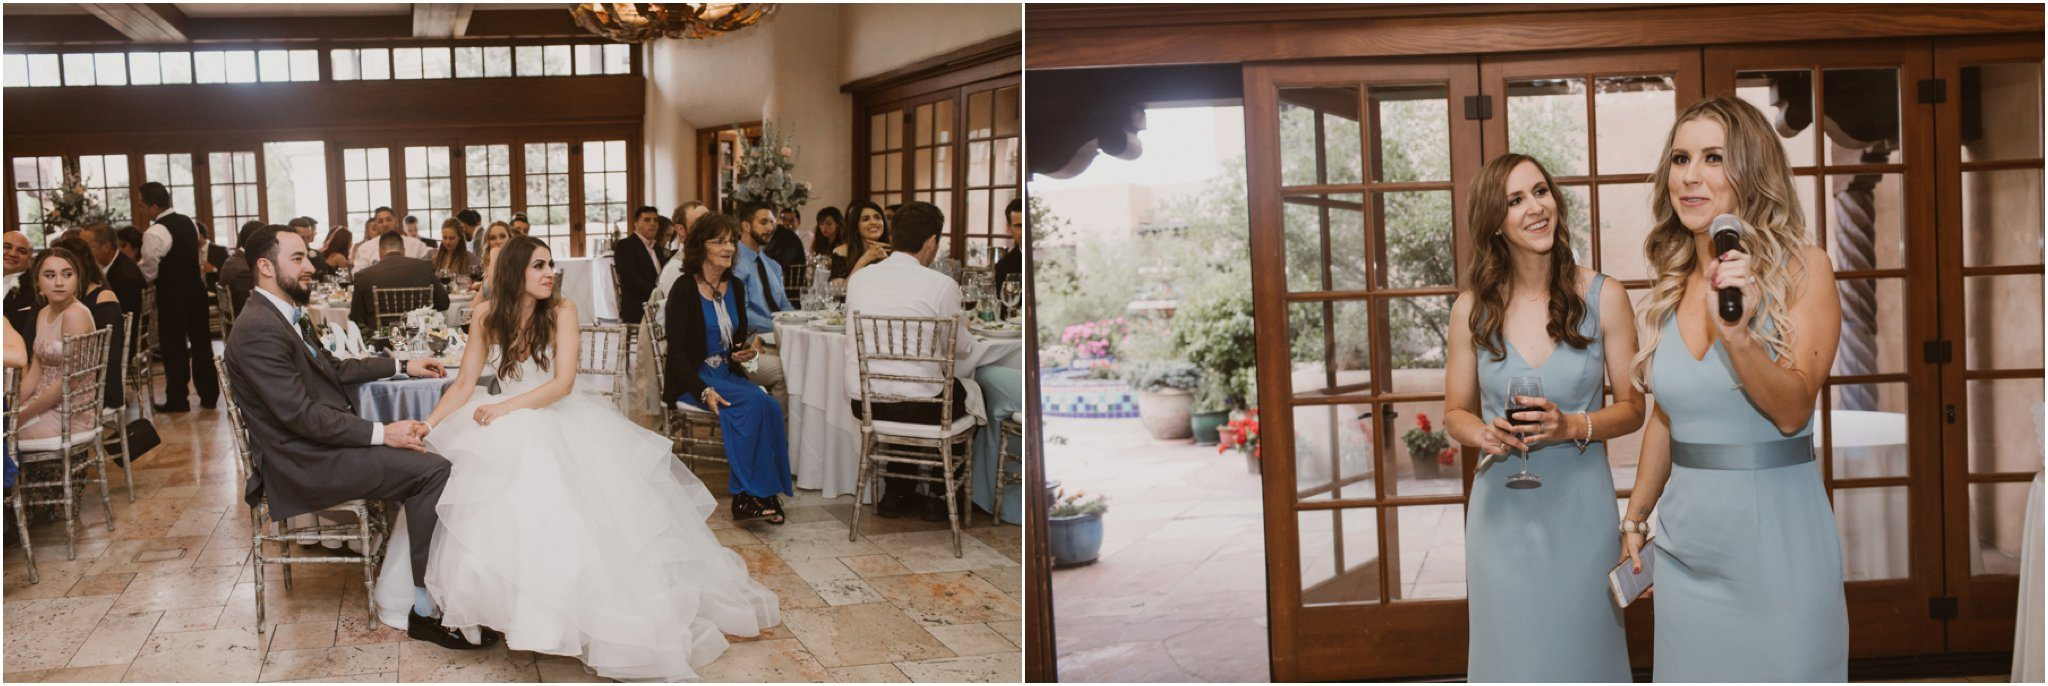 36Blue Rose Photography_ Albuquerque_ Santa Fe_ New Mexico wedding photographers